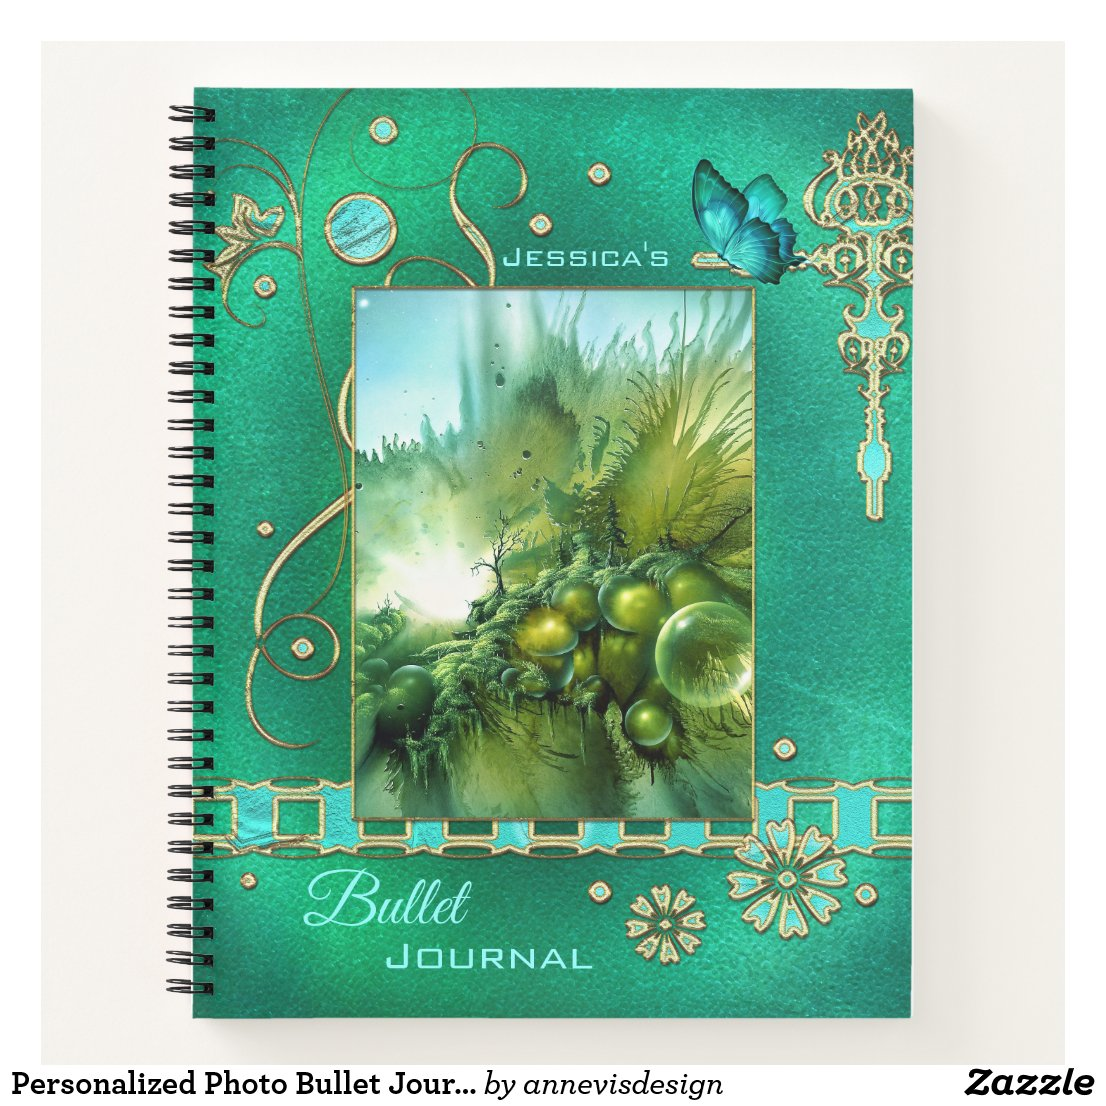 Personalized Photo Bullet Journal Spiral Notebook